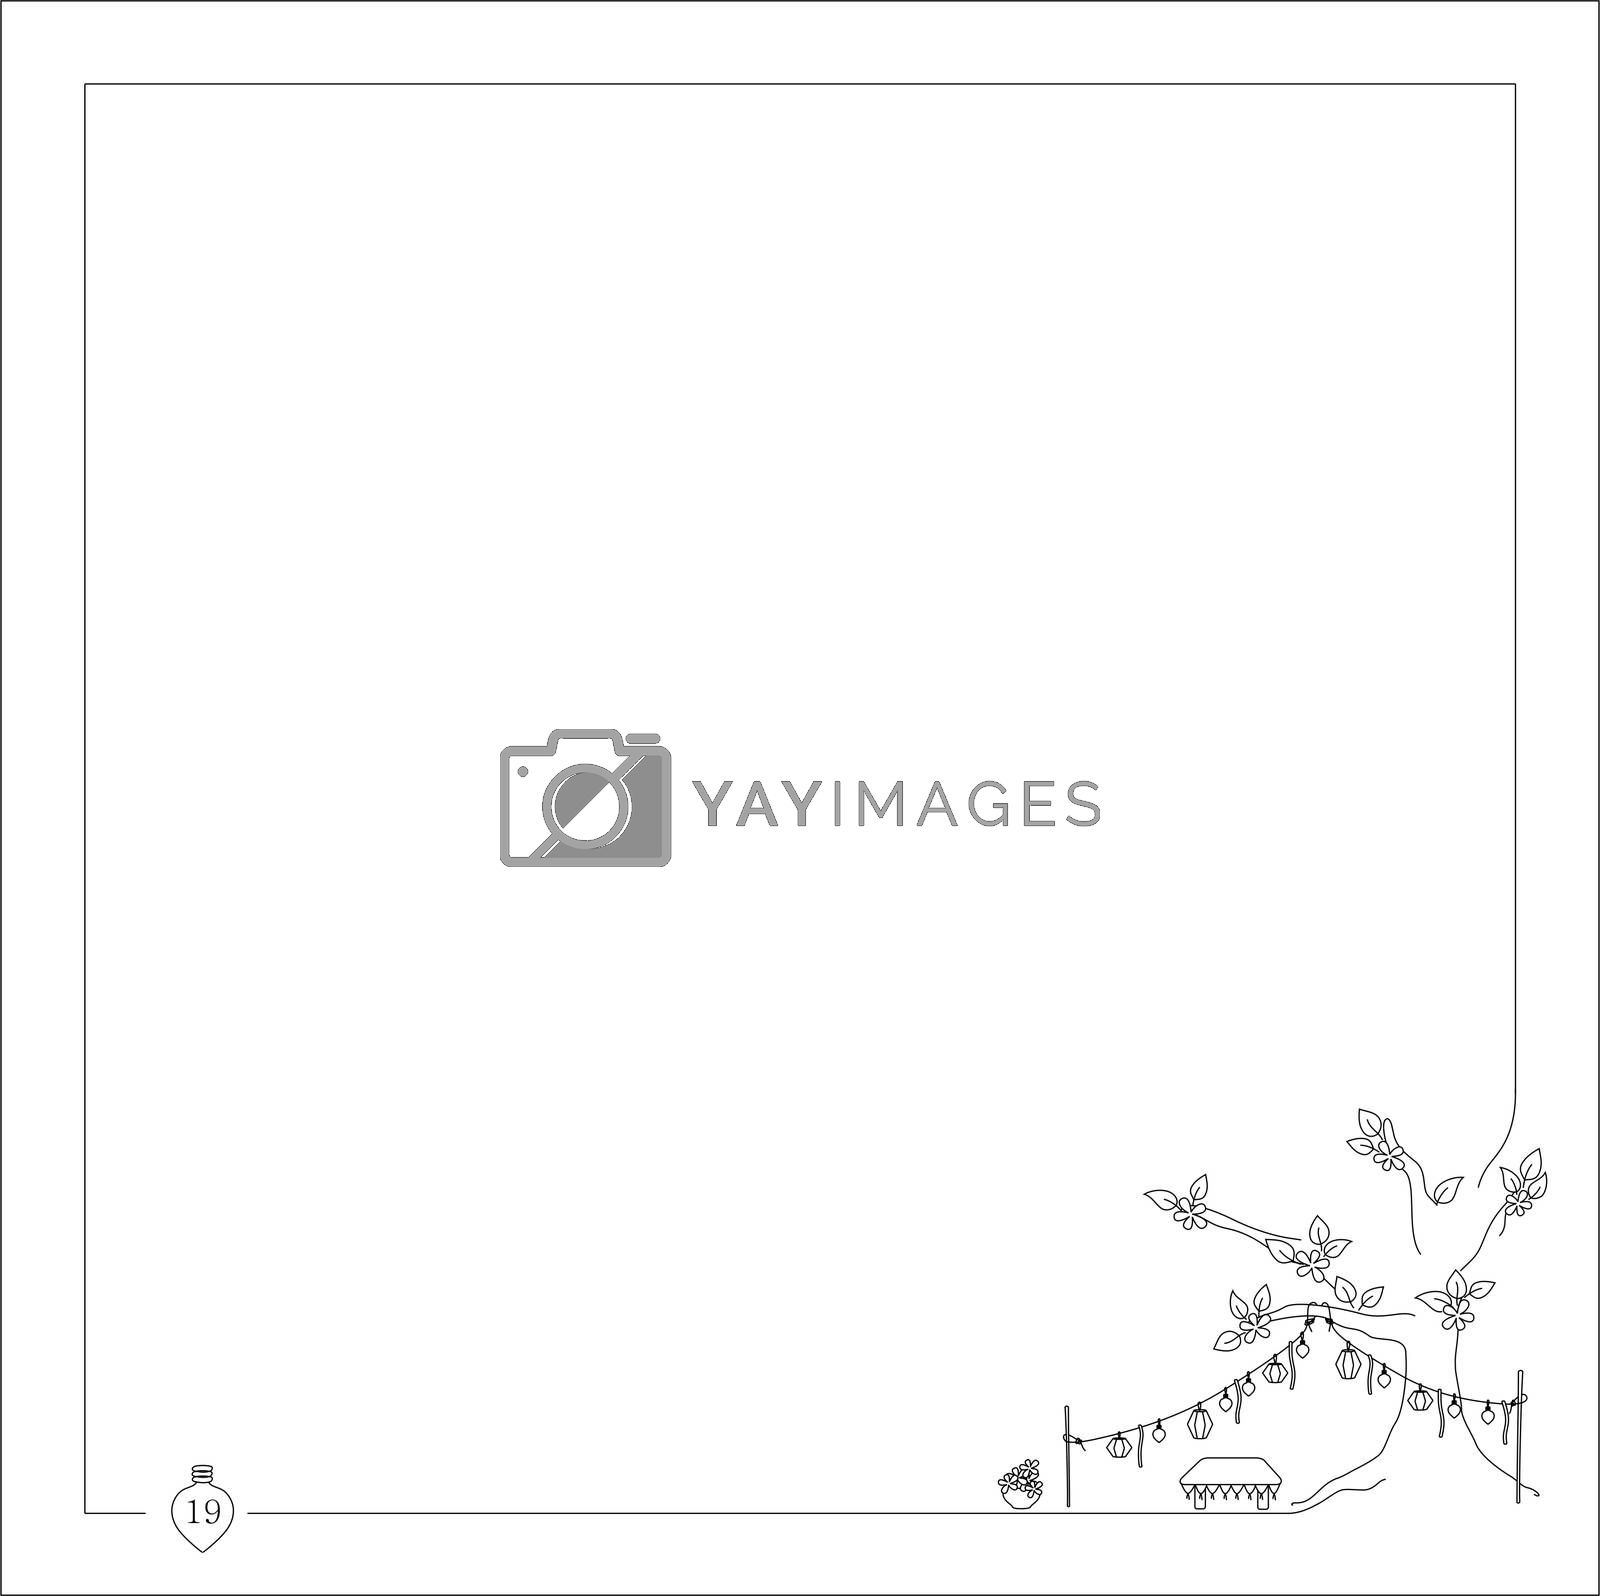 Royalty free image of garland on the tree for notebooks and books with frame by mturhanlar